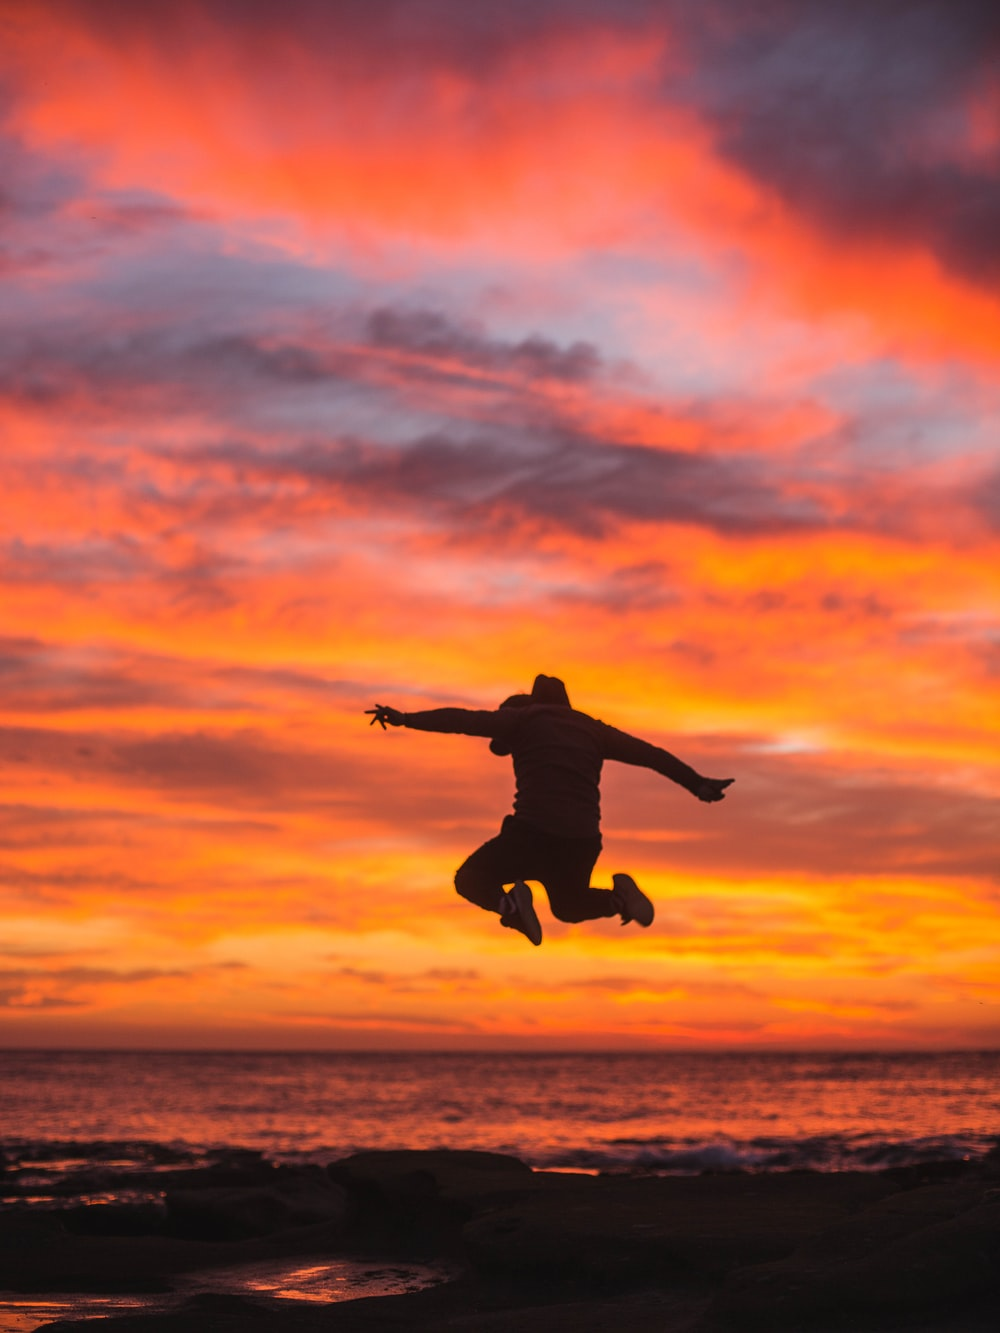 silhouette of person jumping above ground